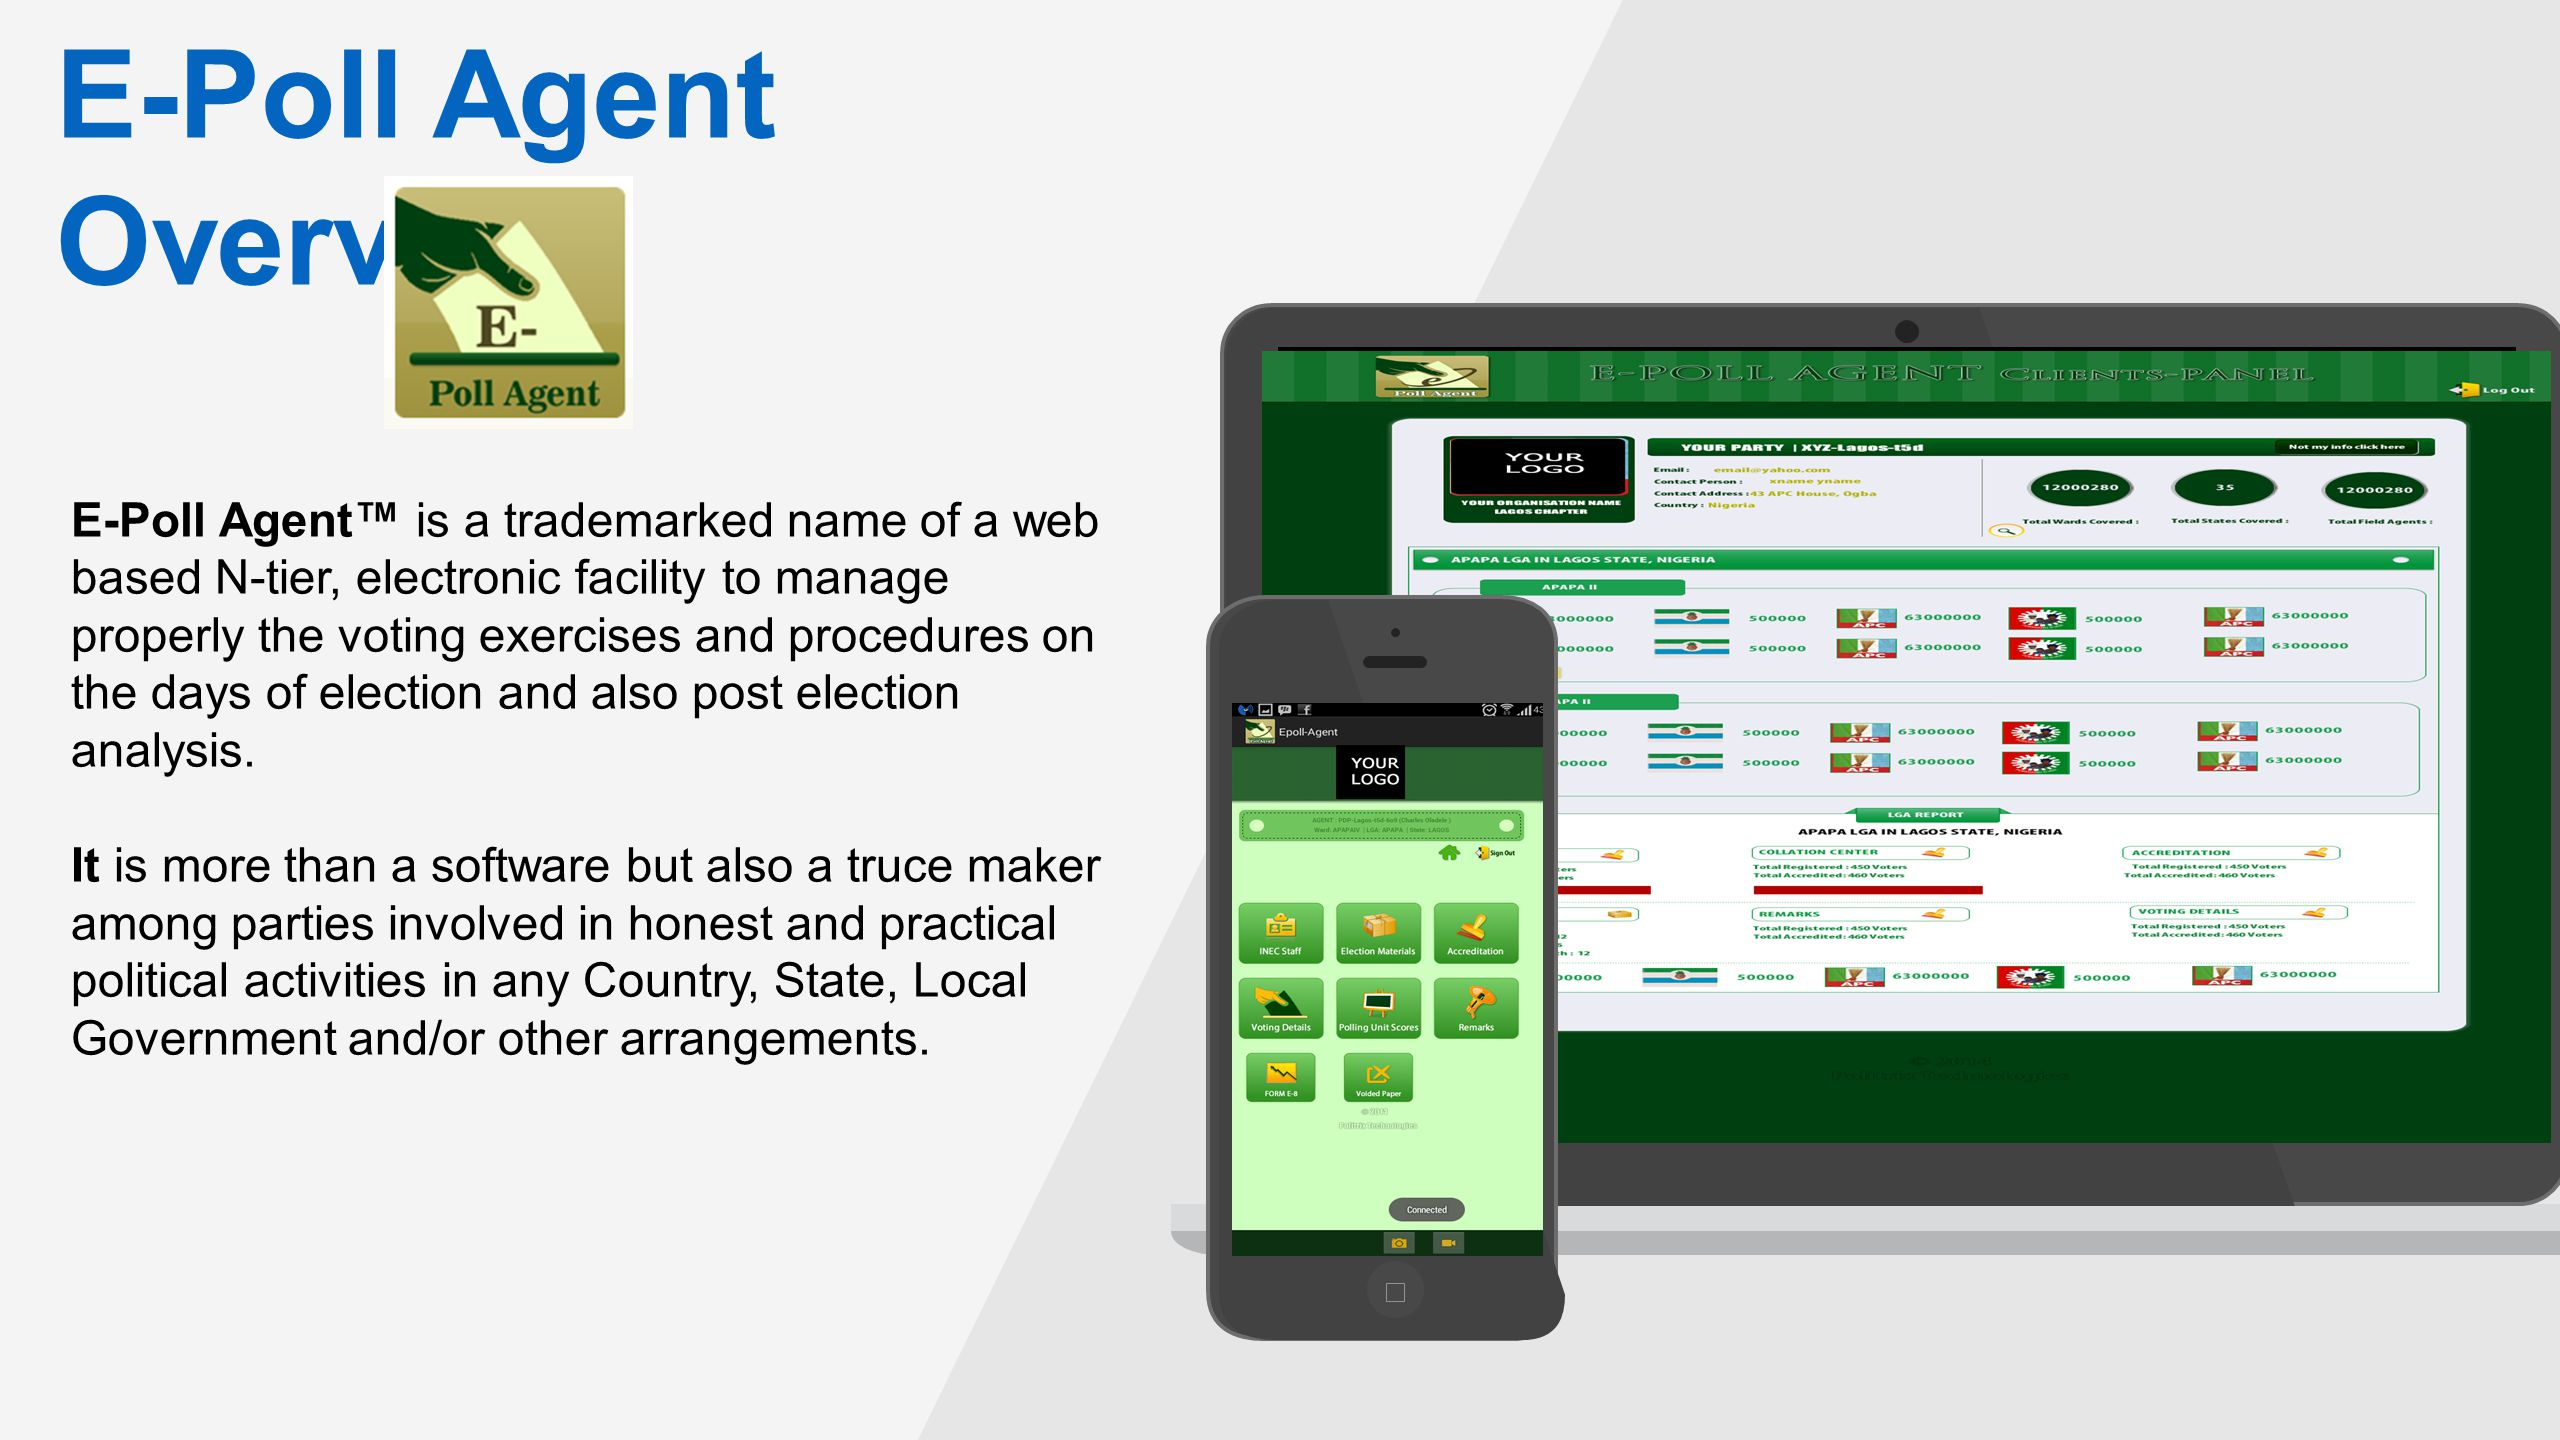 E-Poll Agent Overview E-Poll Agent™ is a trademarked name of a web based N-tier, electronic facility to manage properly the voting exercises and procedures on the days of election and also post election analysis.